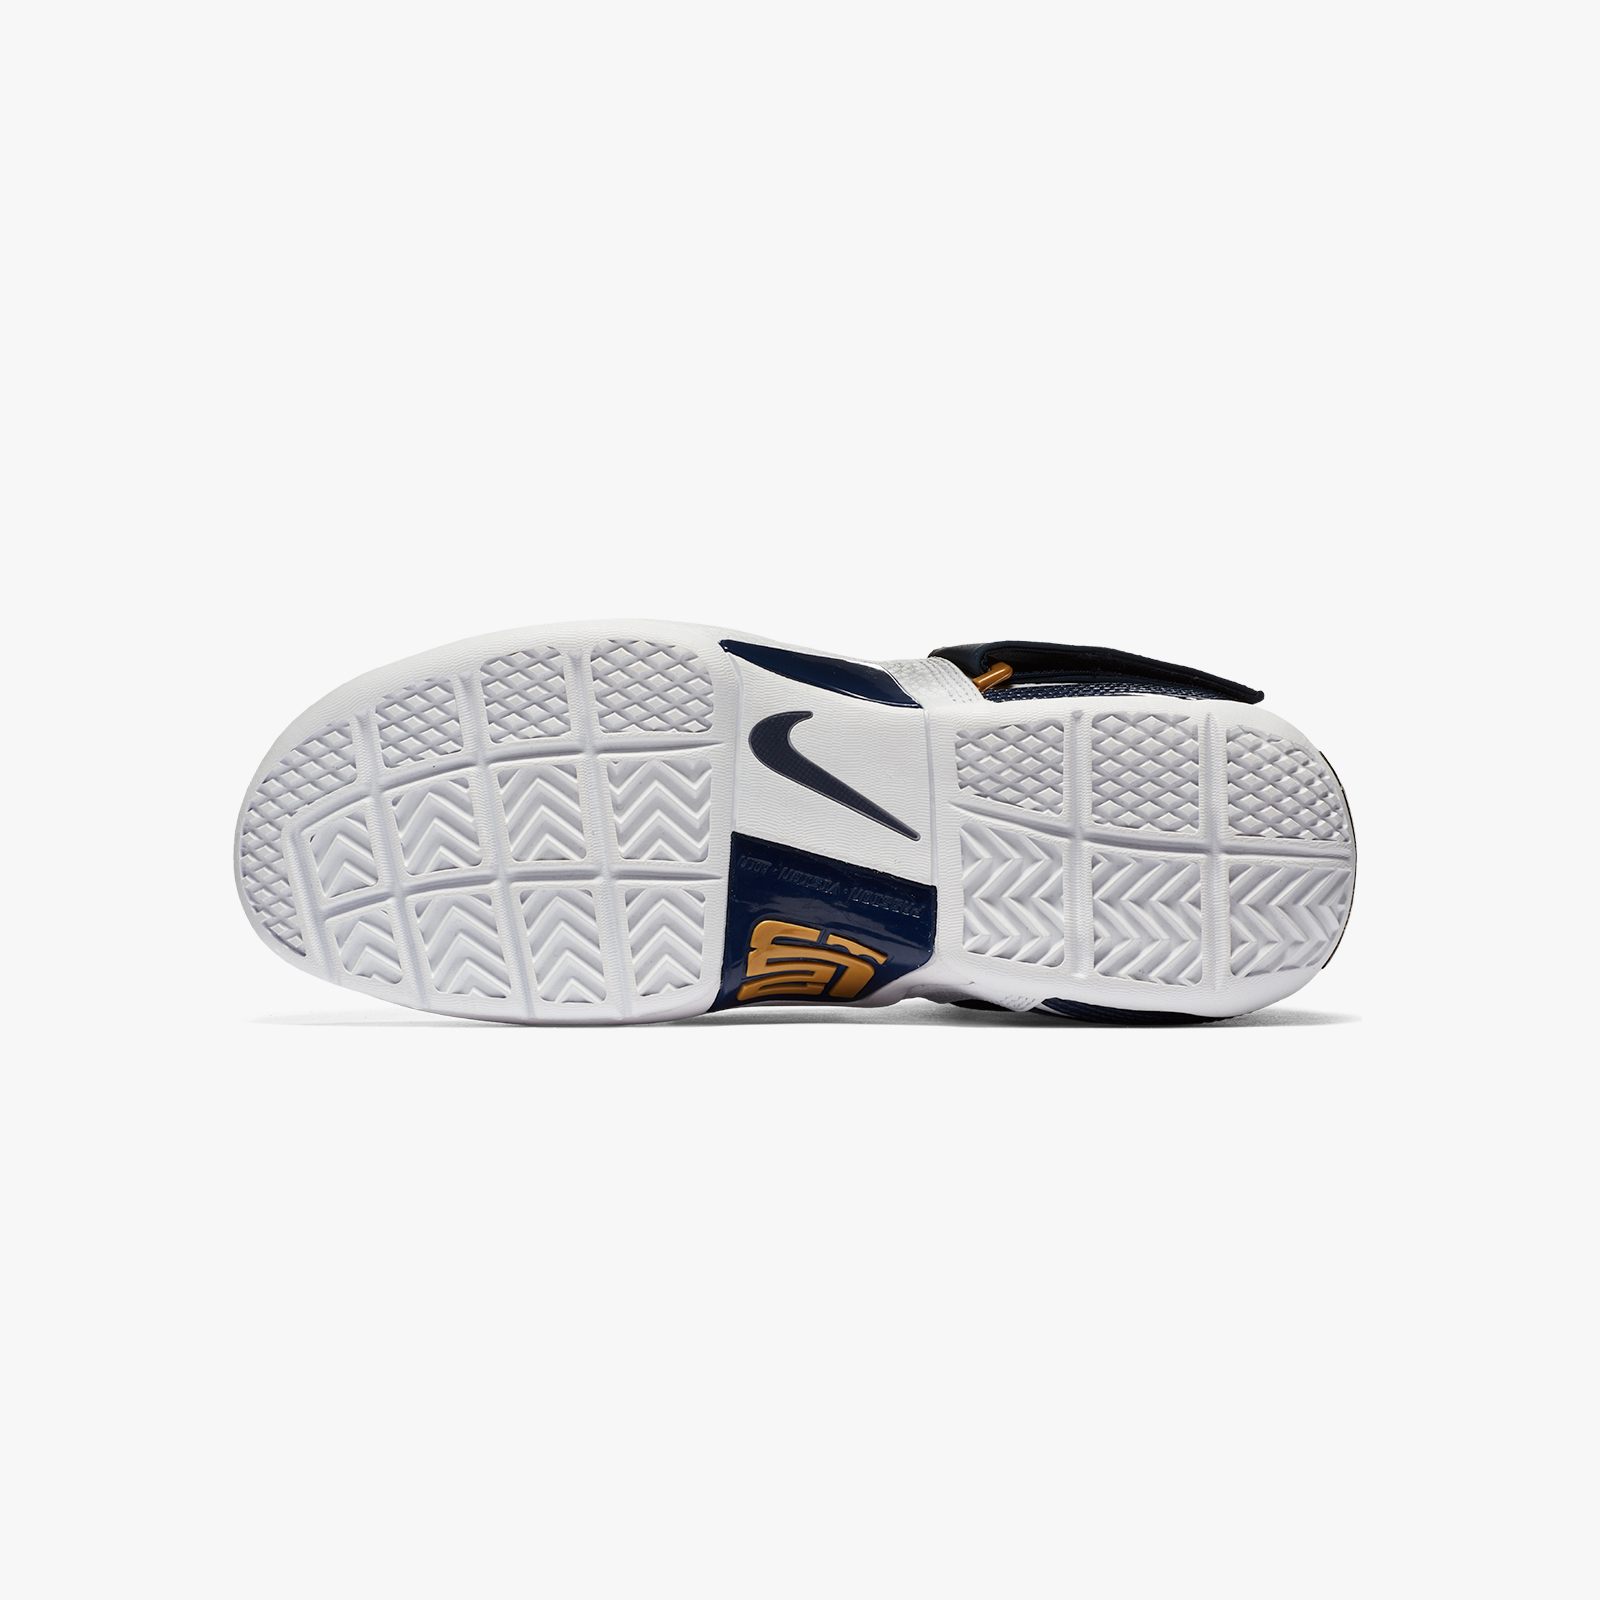 e9d016cb310 Nike Zoom LeBron Soldier CT16 QS - Ao2088-400 - Sneakersnstuff ...